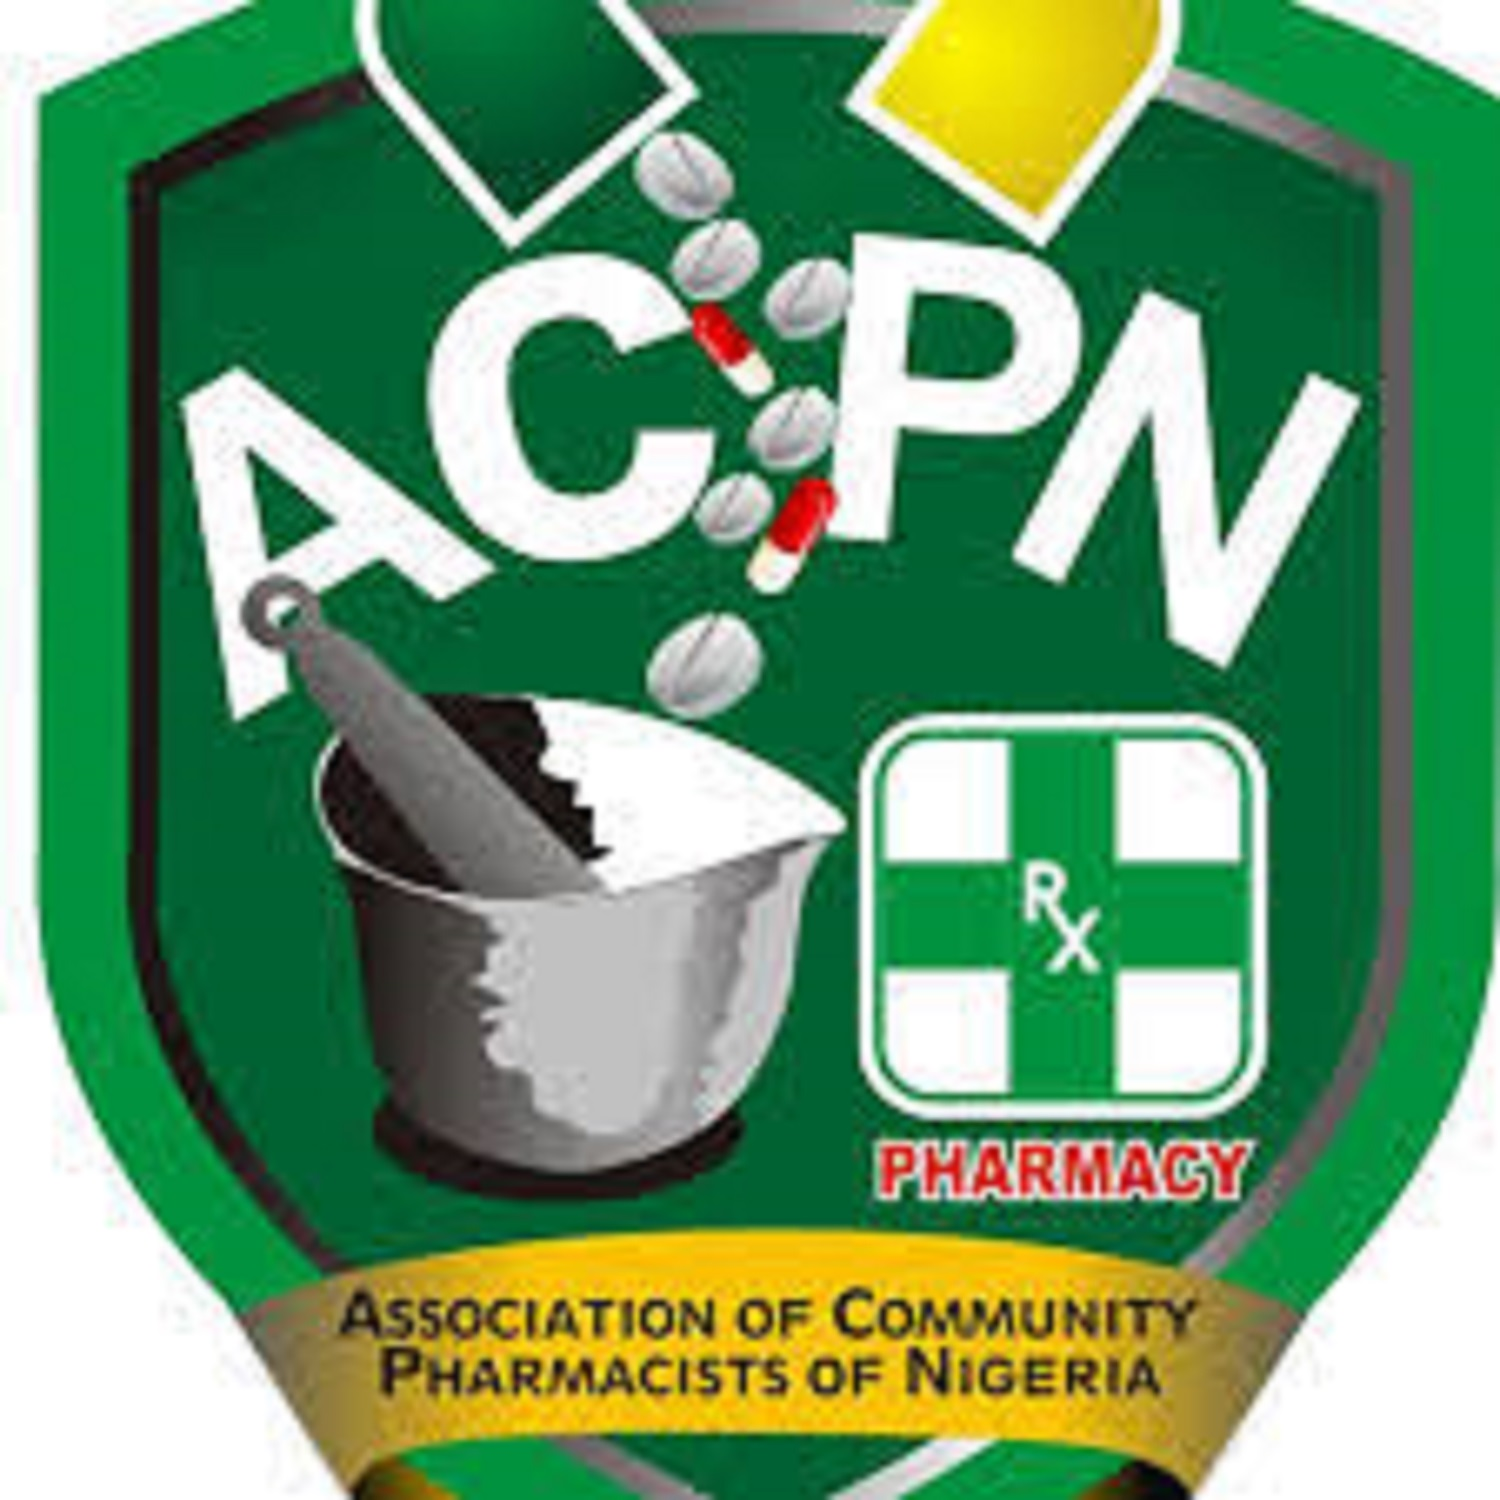 Community pharmacists worry over exposure of Nigerians to falsified medicines